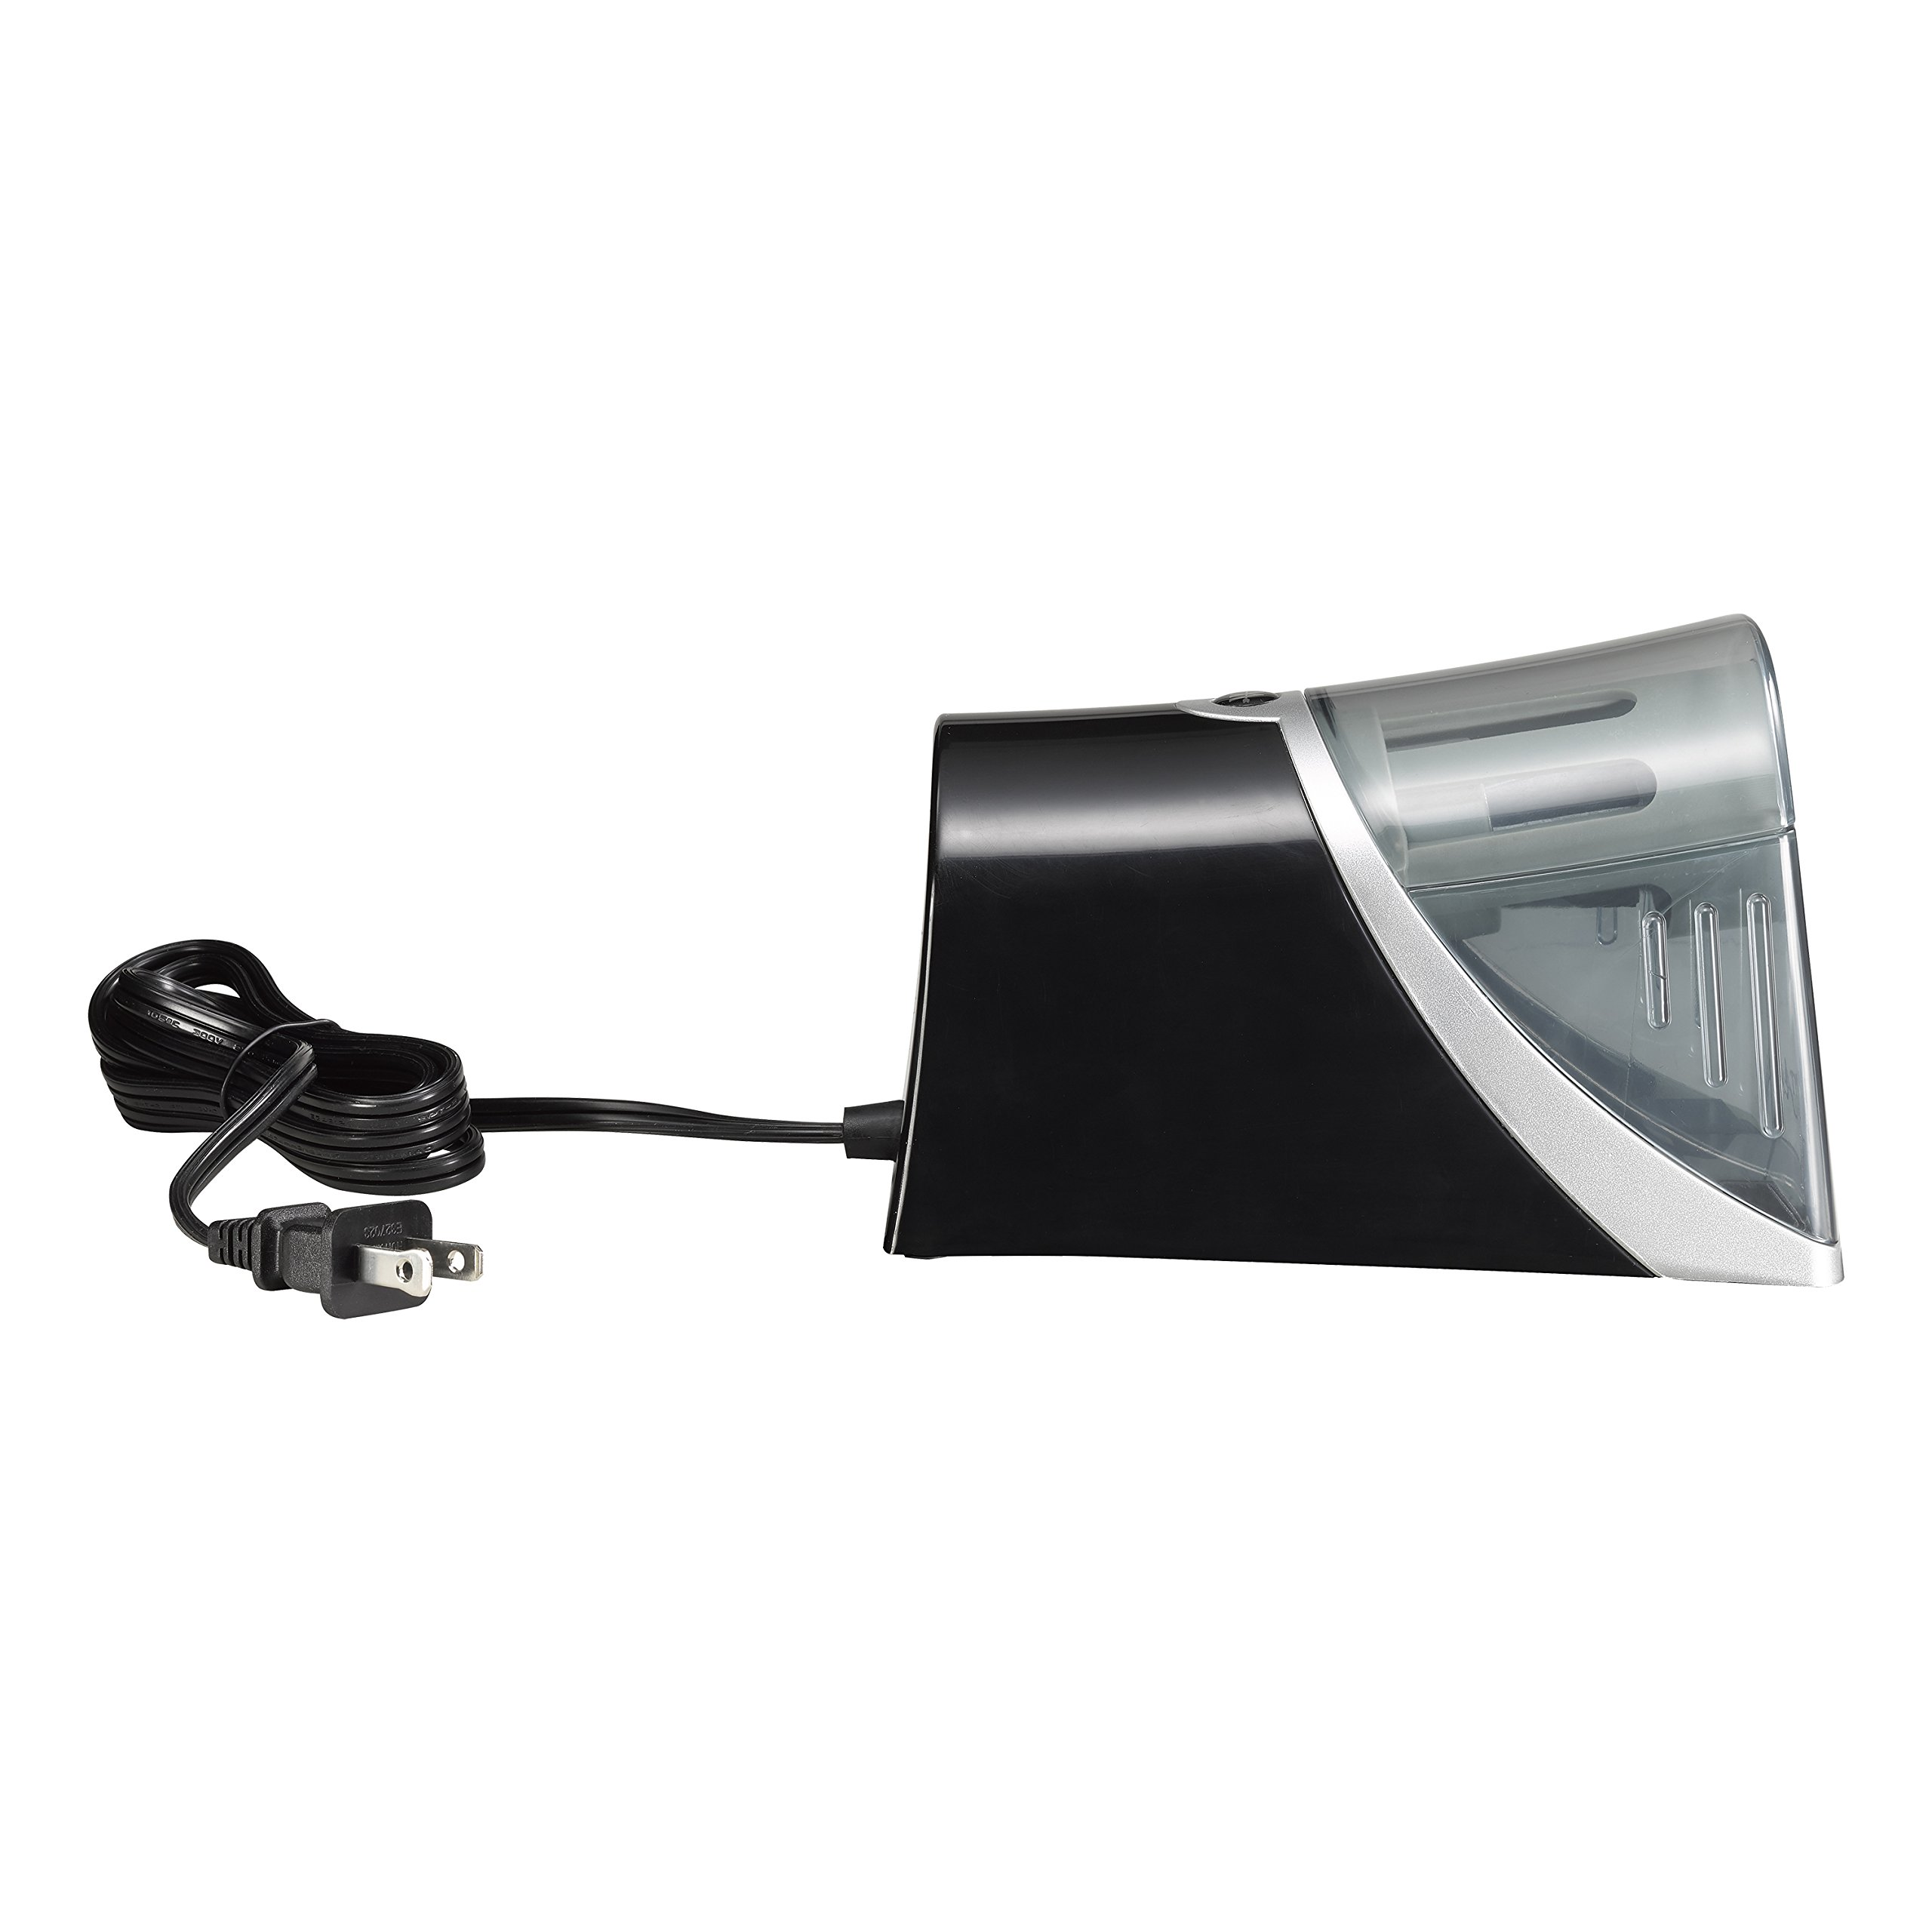 Westcott iPoint Evolution Axis Electric Sharpener by Westcott (Image #6)